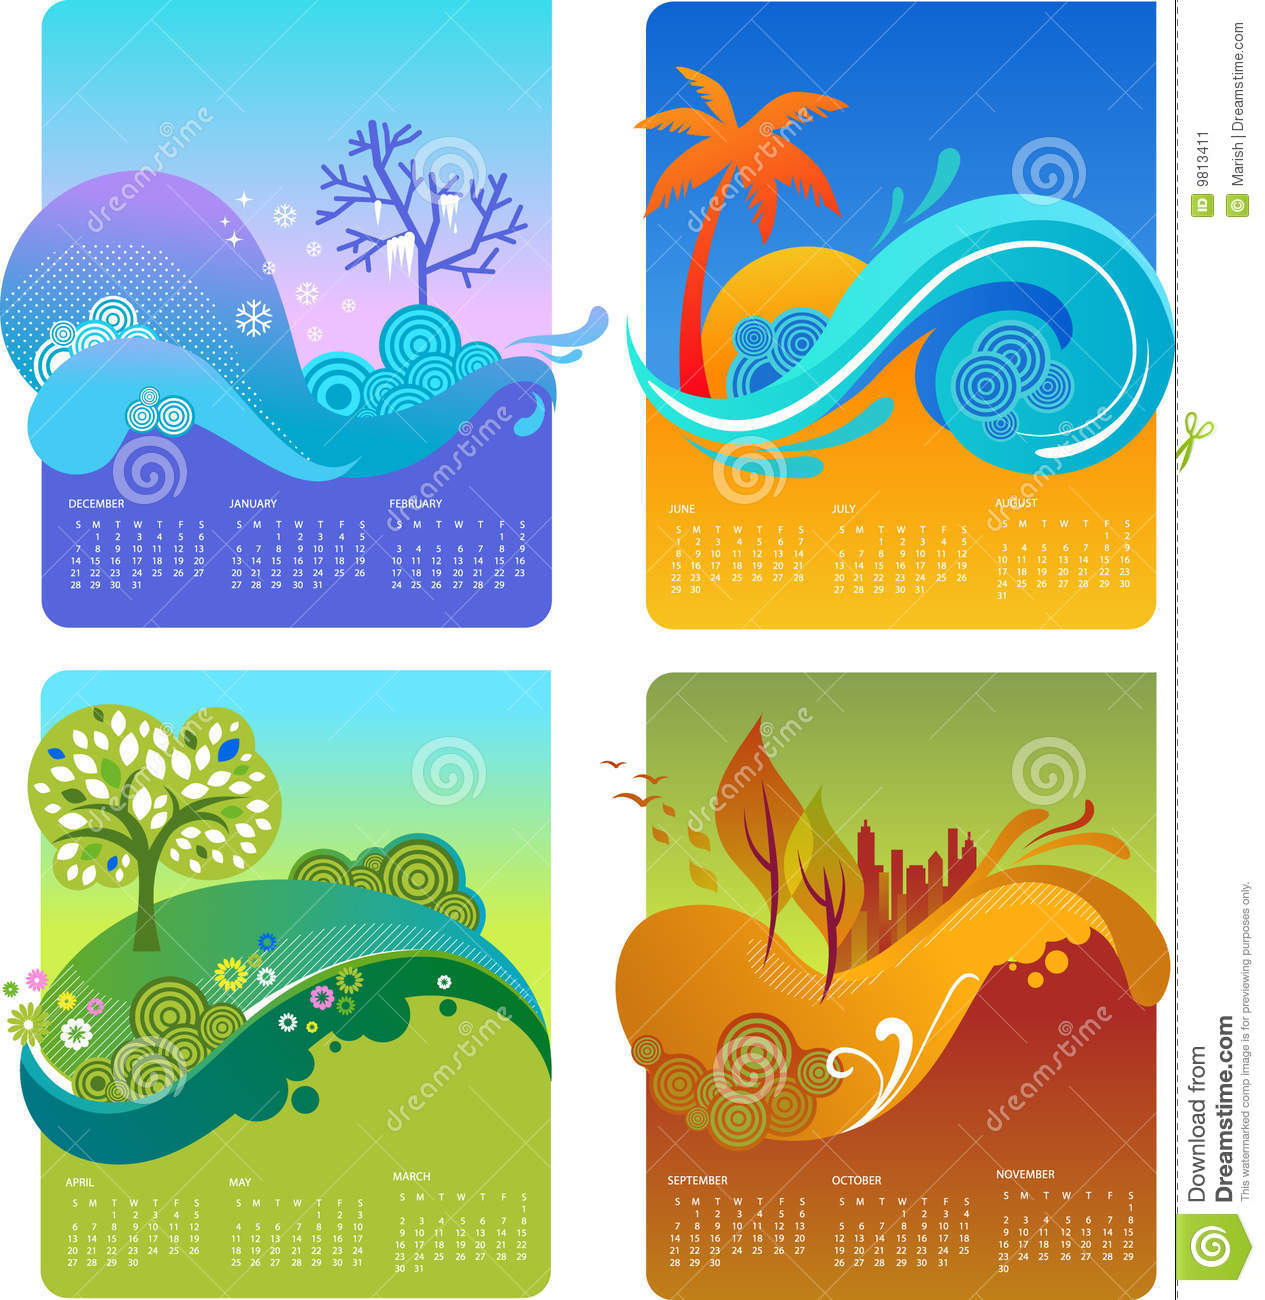 Calendar Design Ideas Vector : Template of design calendar vector stock image